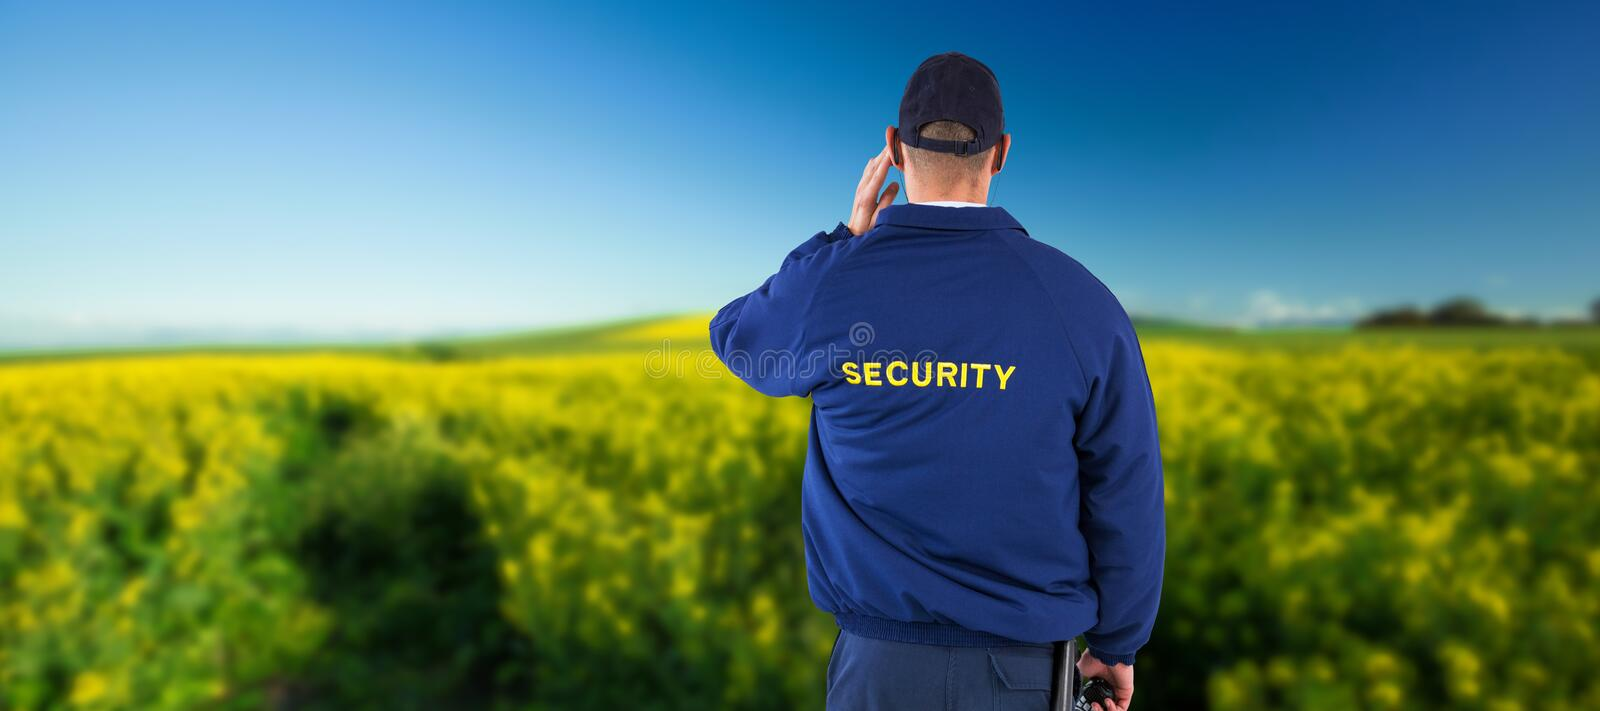 Composite image of rear view of security officer listening to earpiece. Rear view of security officer listening to earpiece against yellow mustard field royalty free stock photo